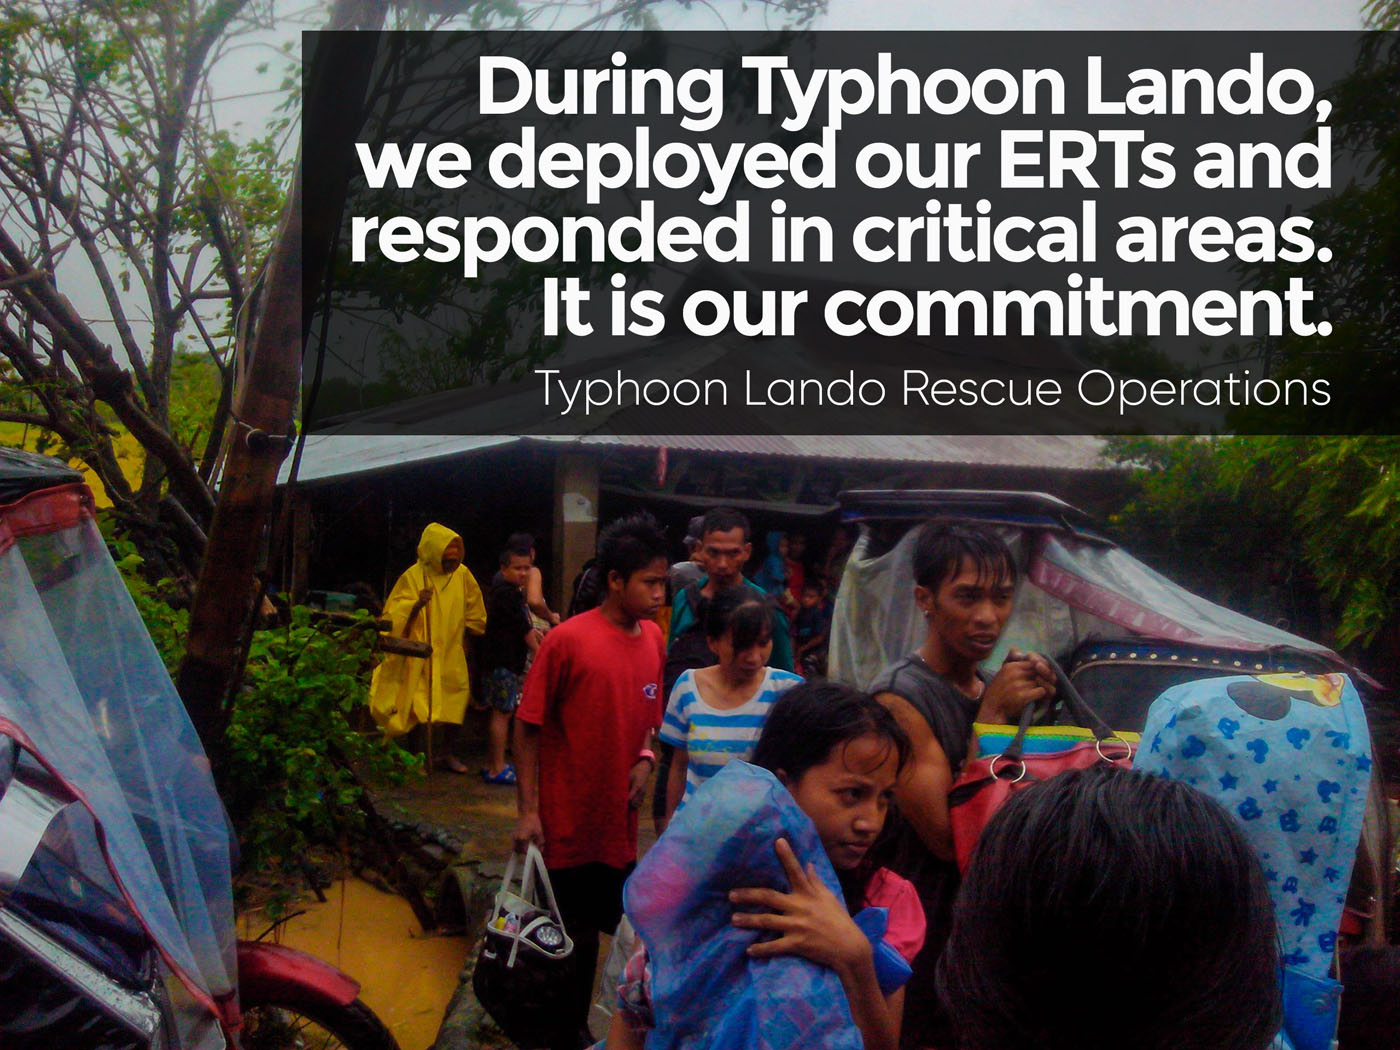 Typhoon Lando Rescue